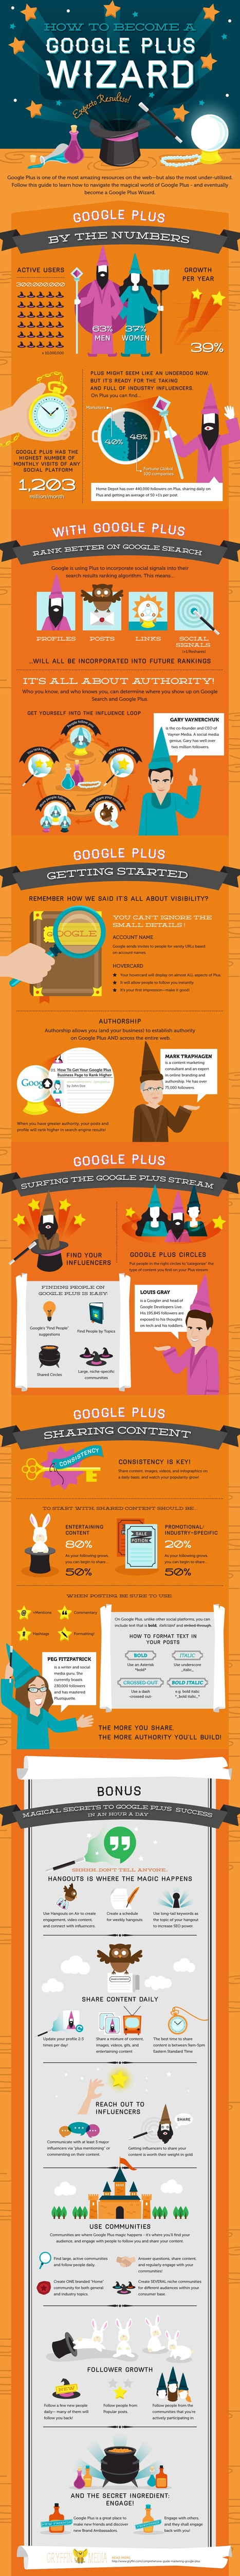 An Infographic Guide to Marketing on Google Plus | Social Media Today | Social Networker | Scoop.it